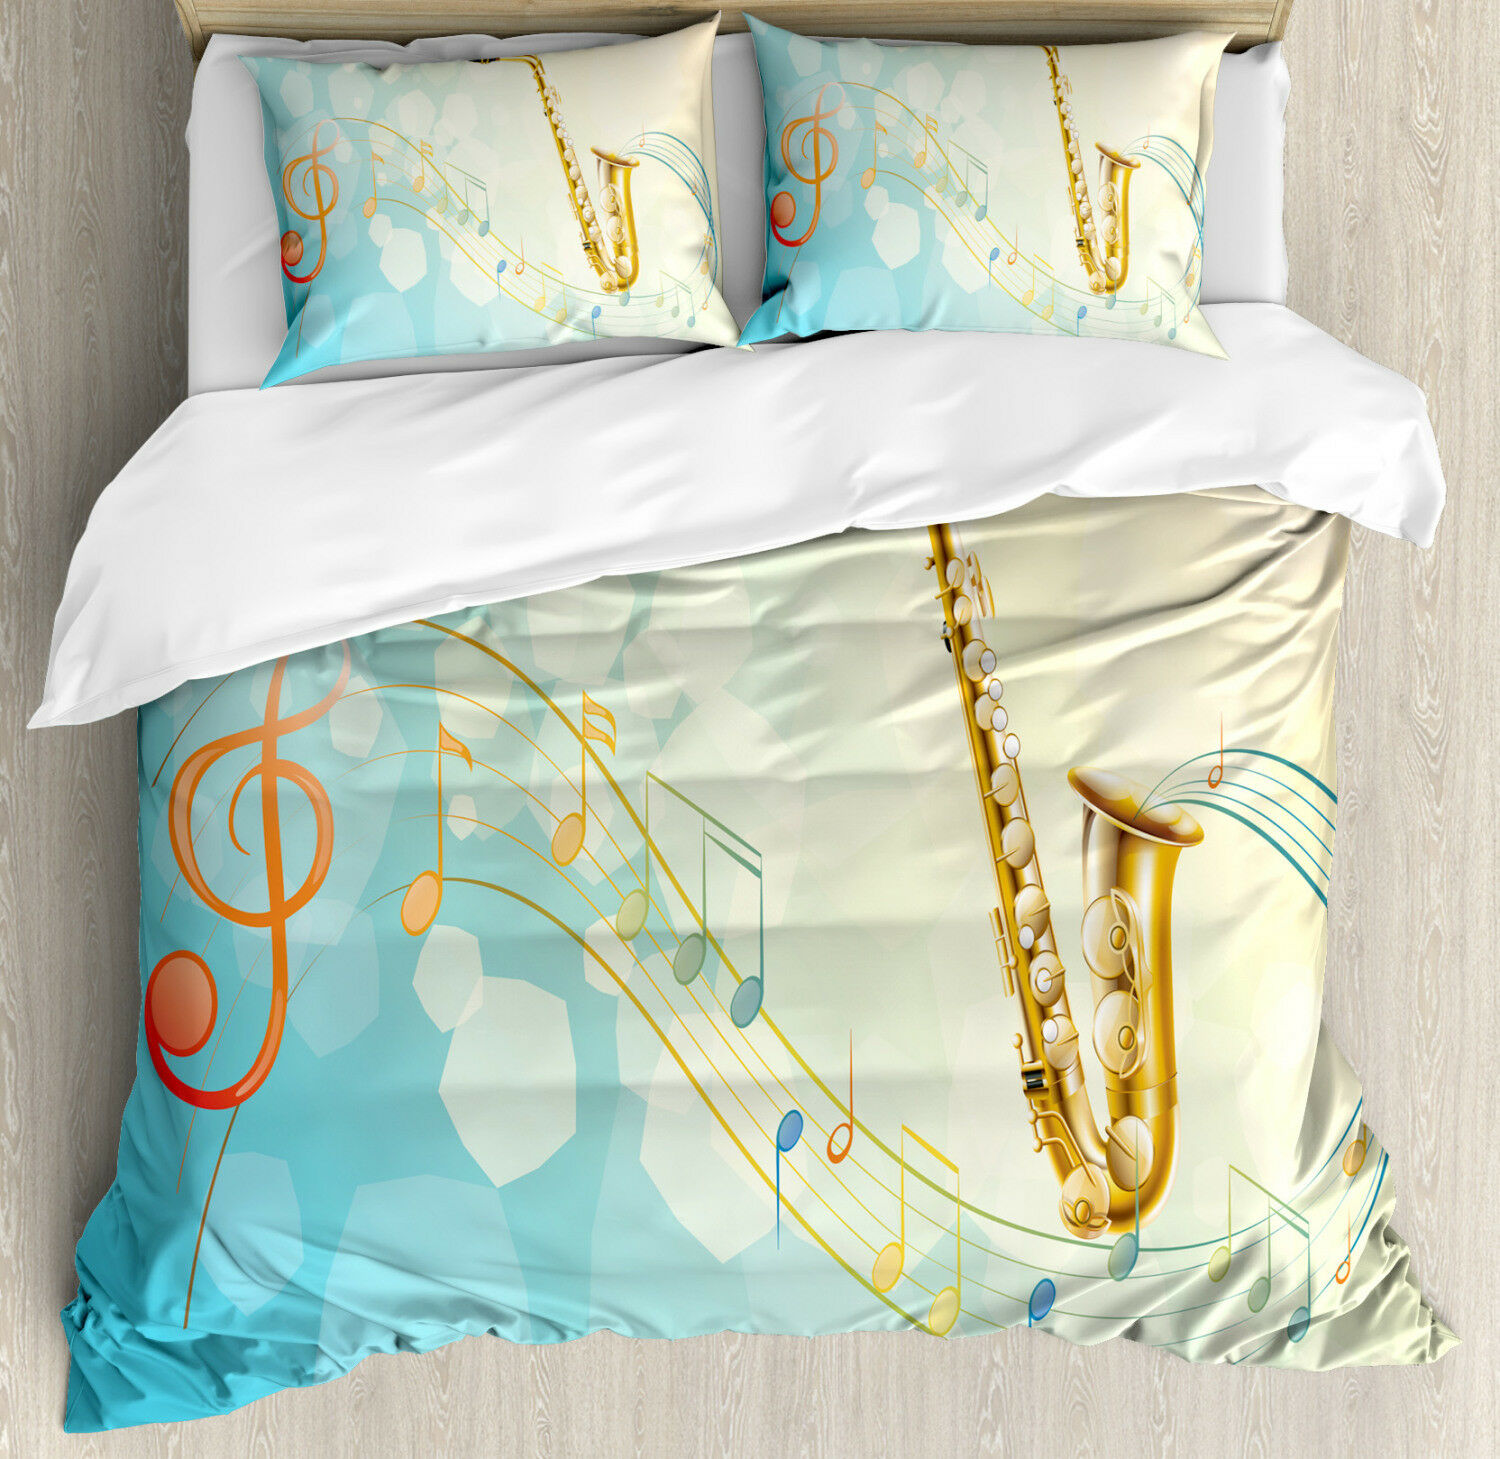 colorful Duvet Cover Set with Pillow Shams Musical Notes Vibes Print